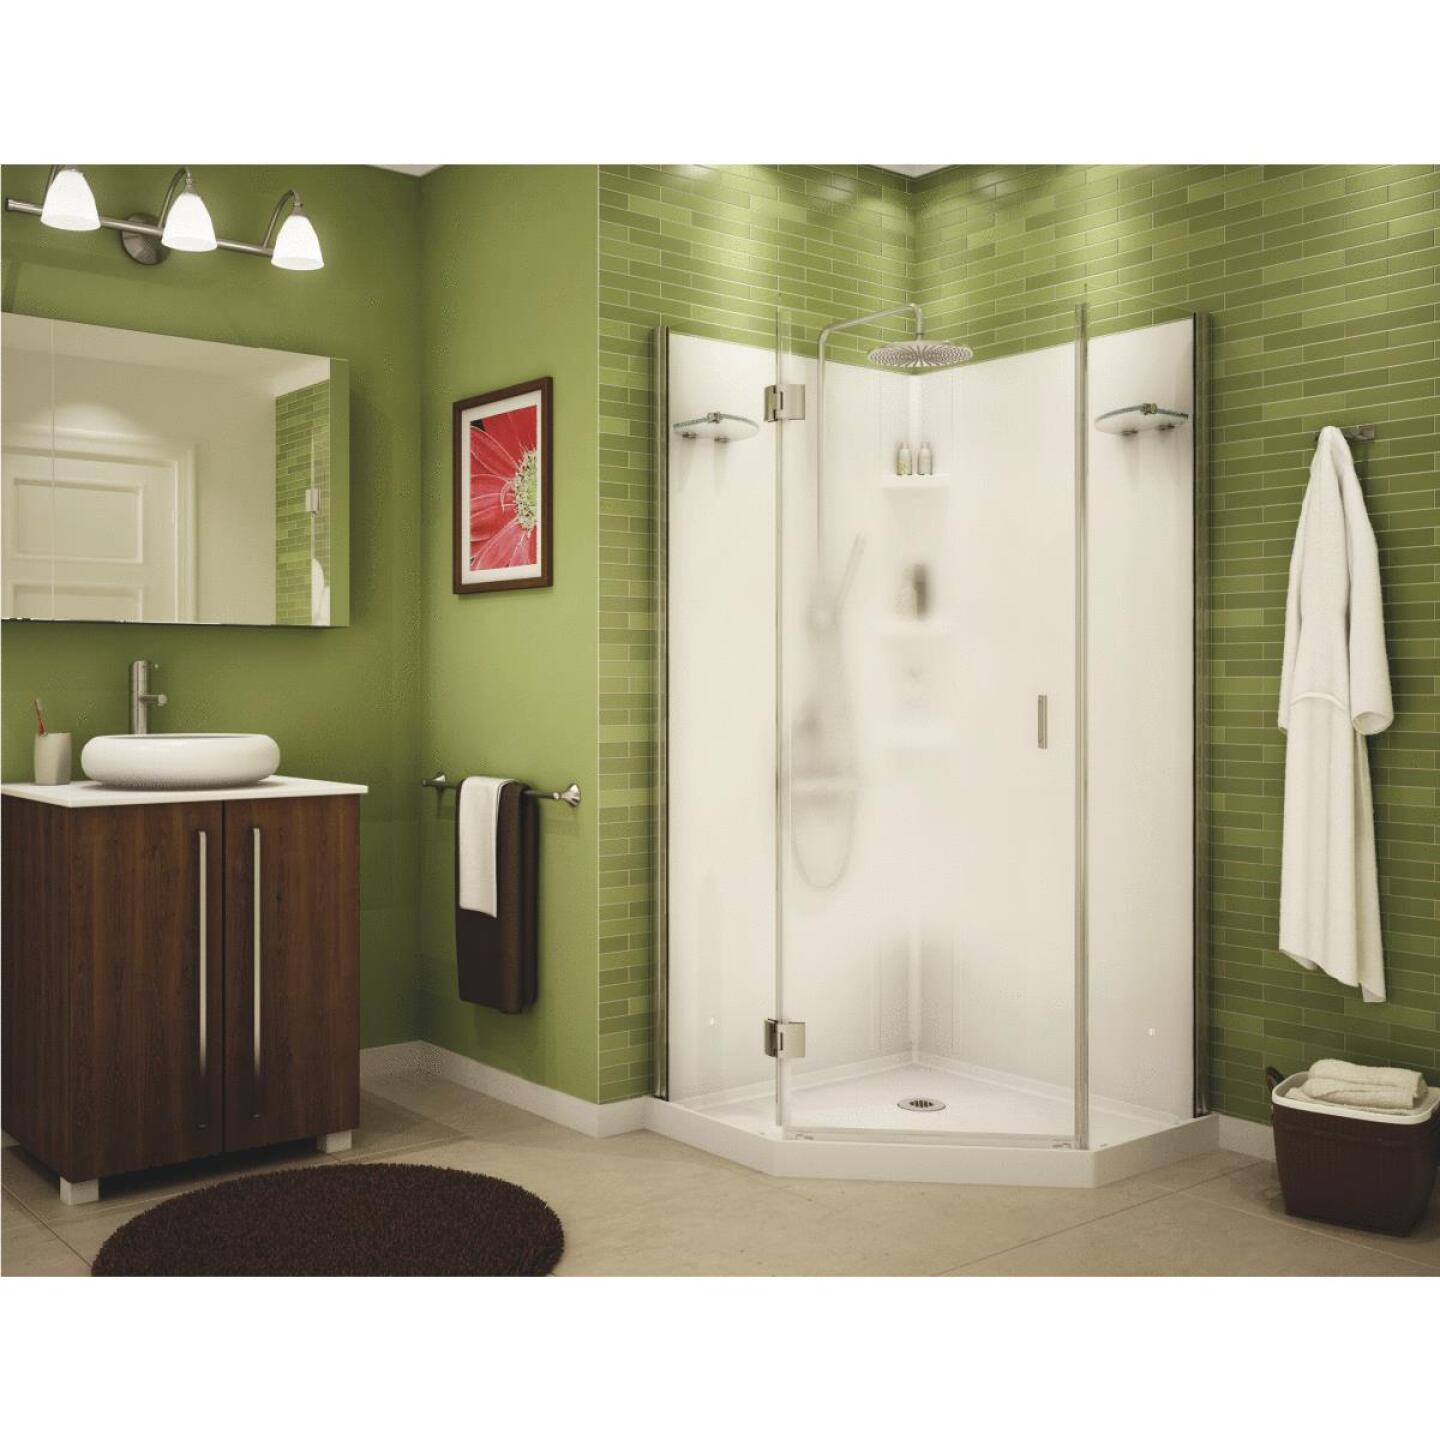 Maax 36 In. W. x 72 In. H. x 36 In. D. White Polystyrene Shower Stall Image 2